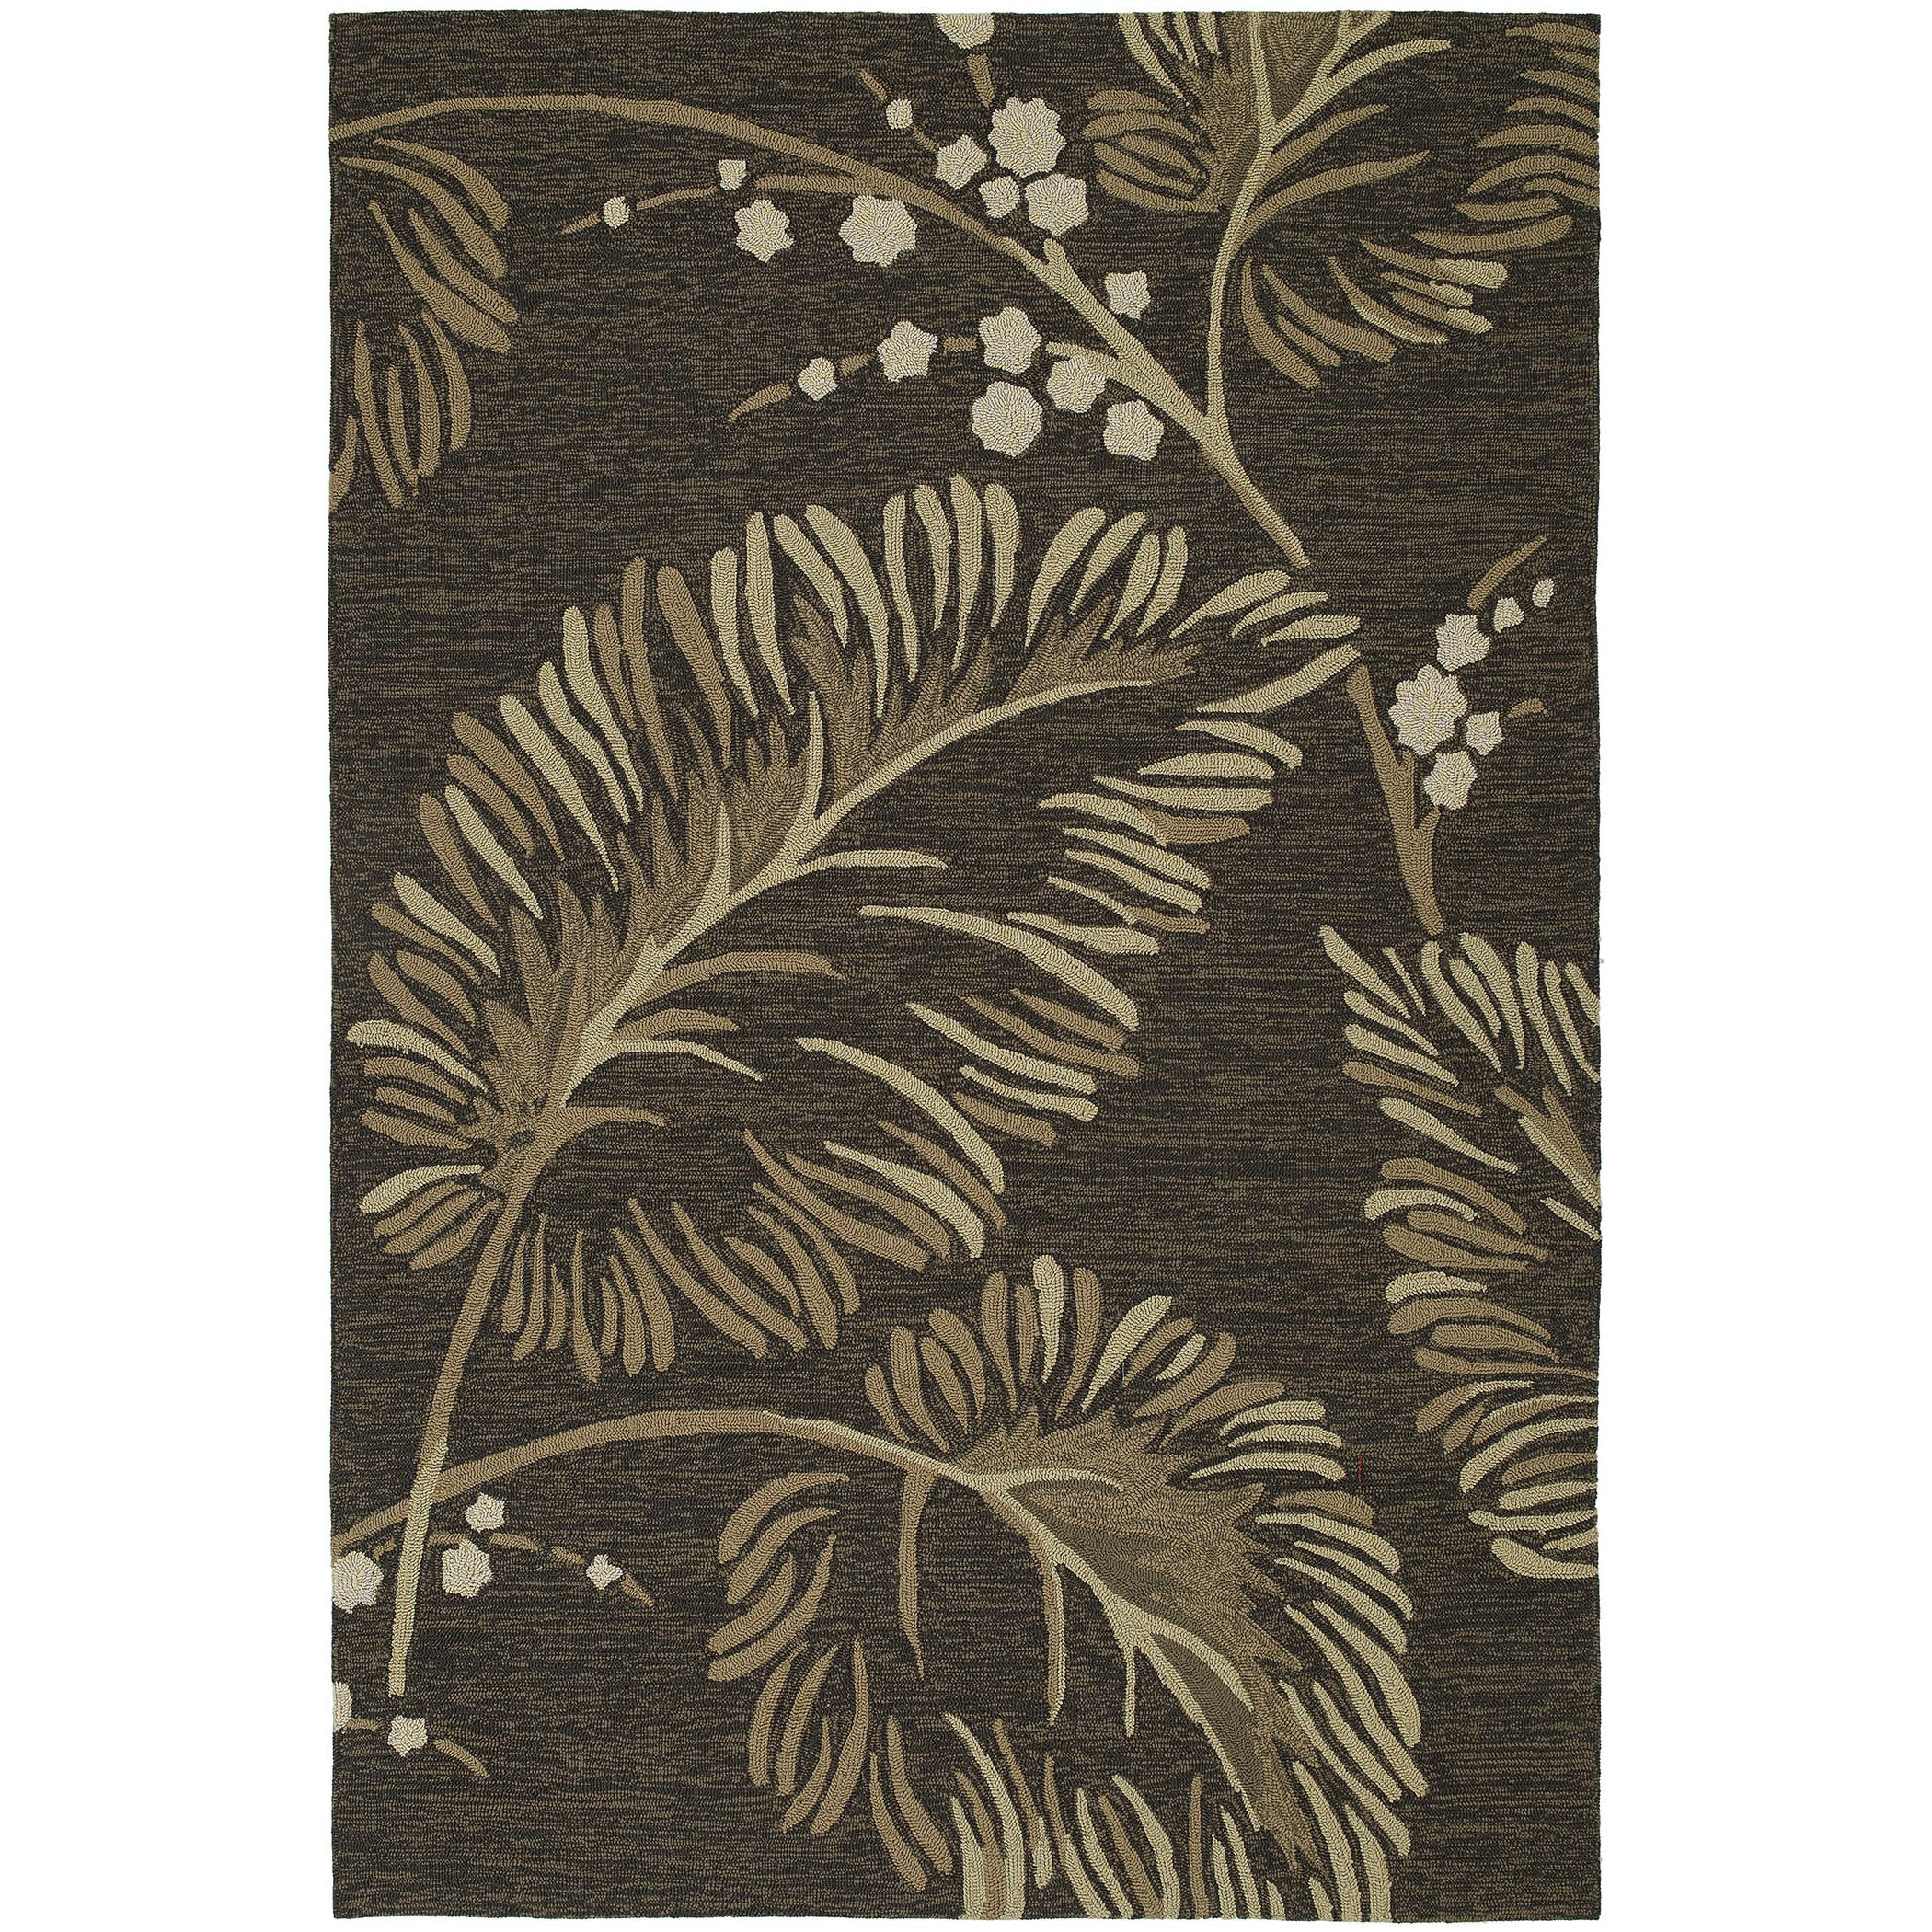 Kaleen Home and Porch Floral Indoor Outdoor Area Rug I